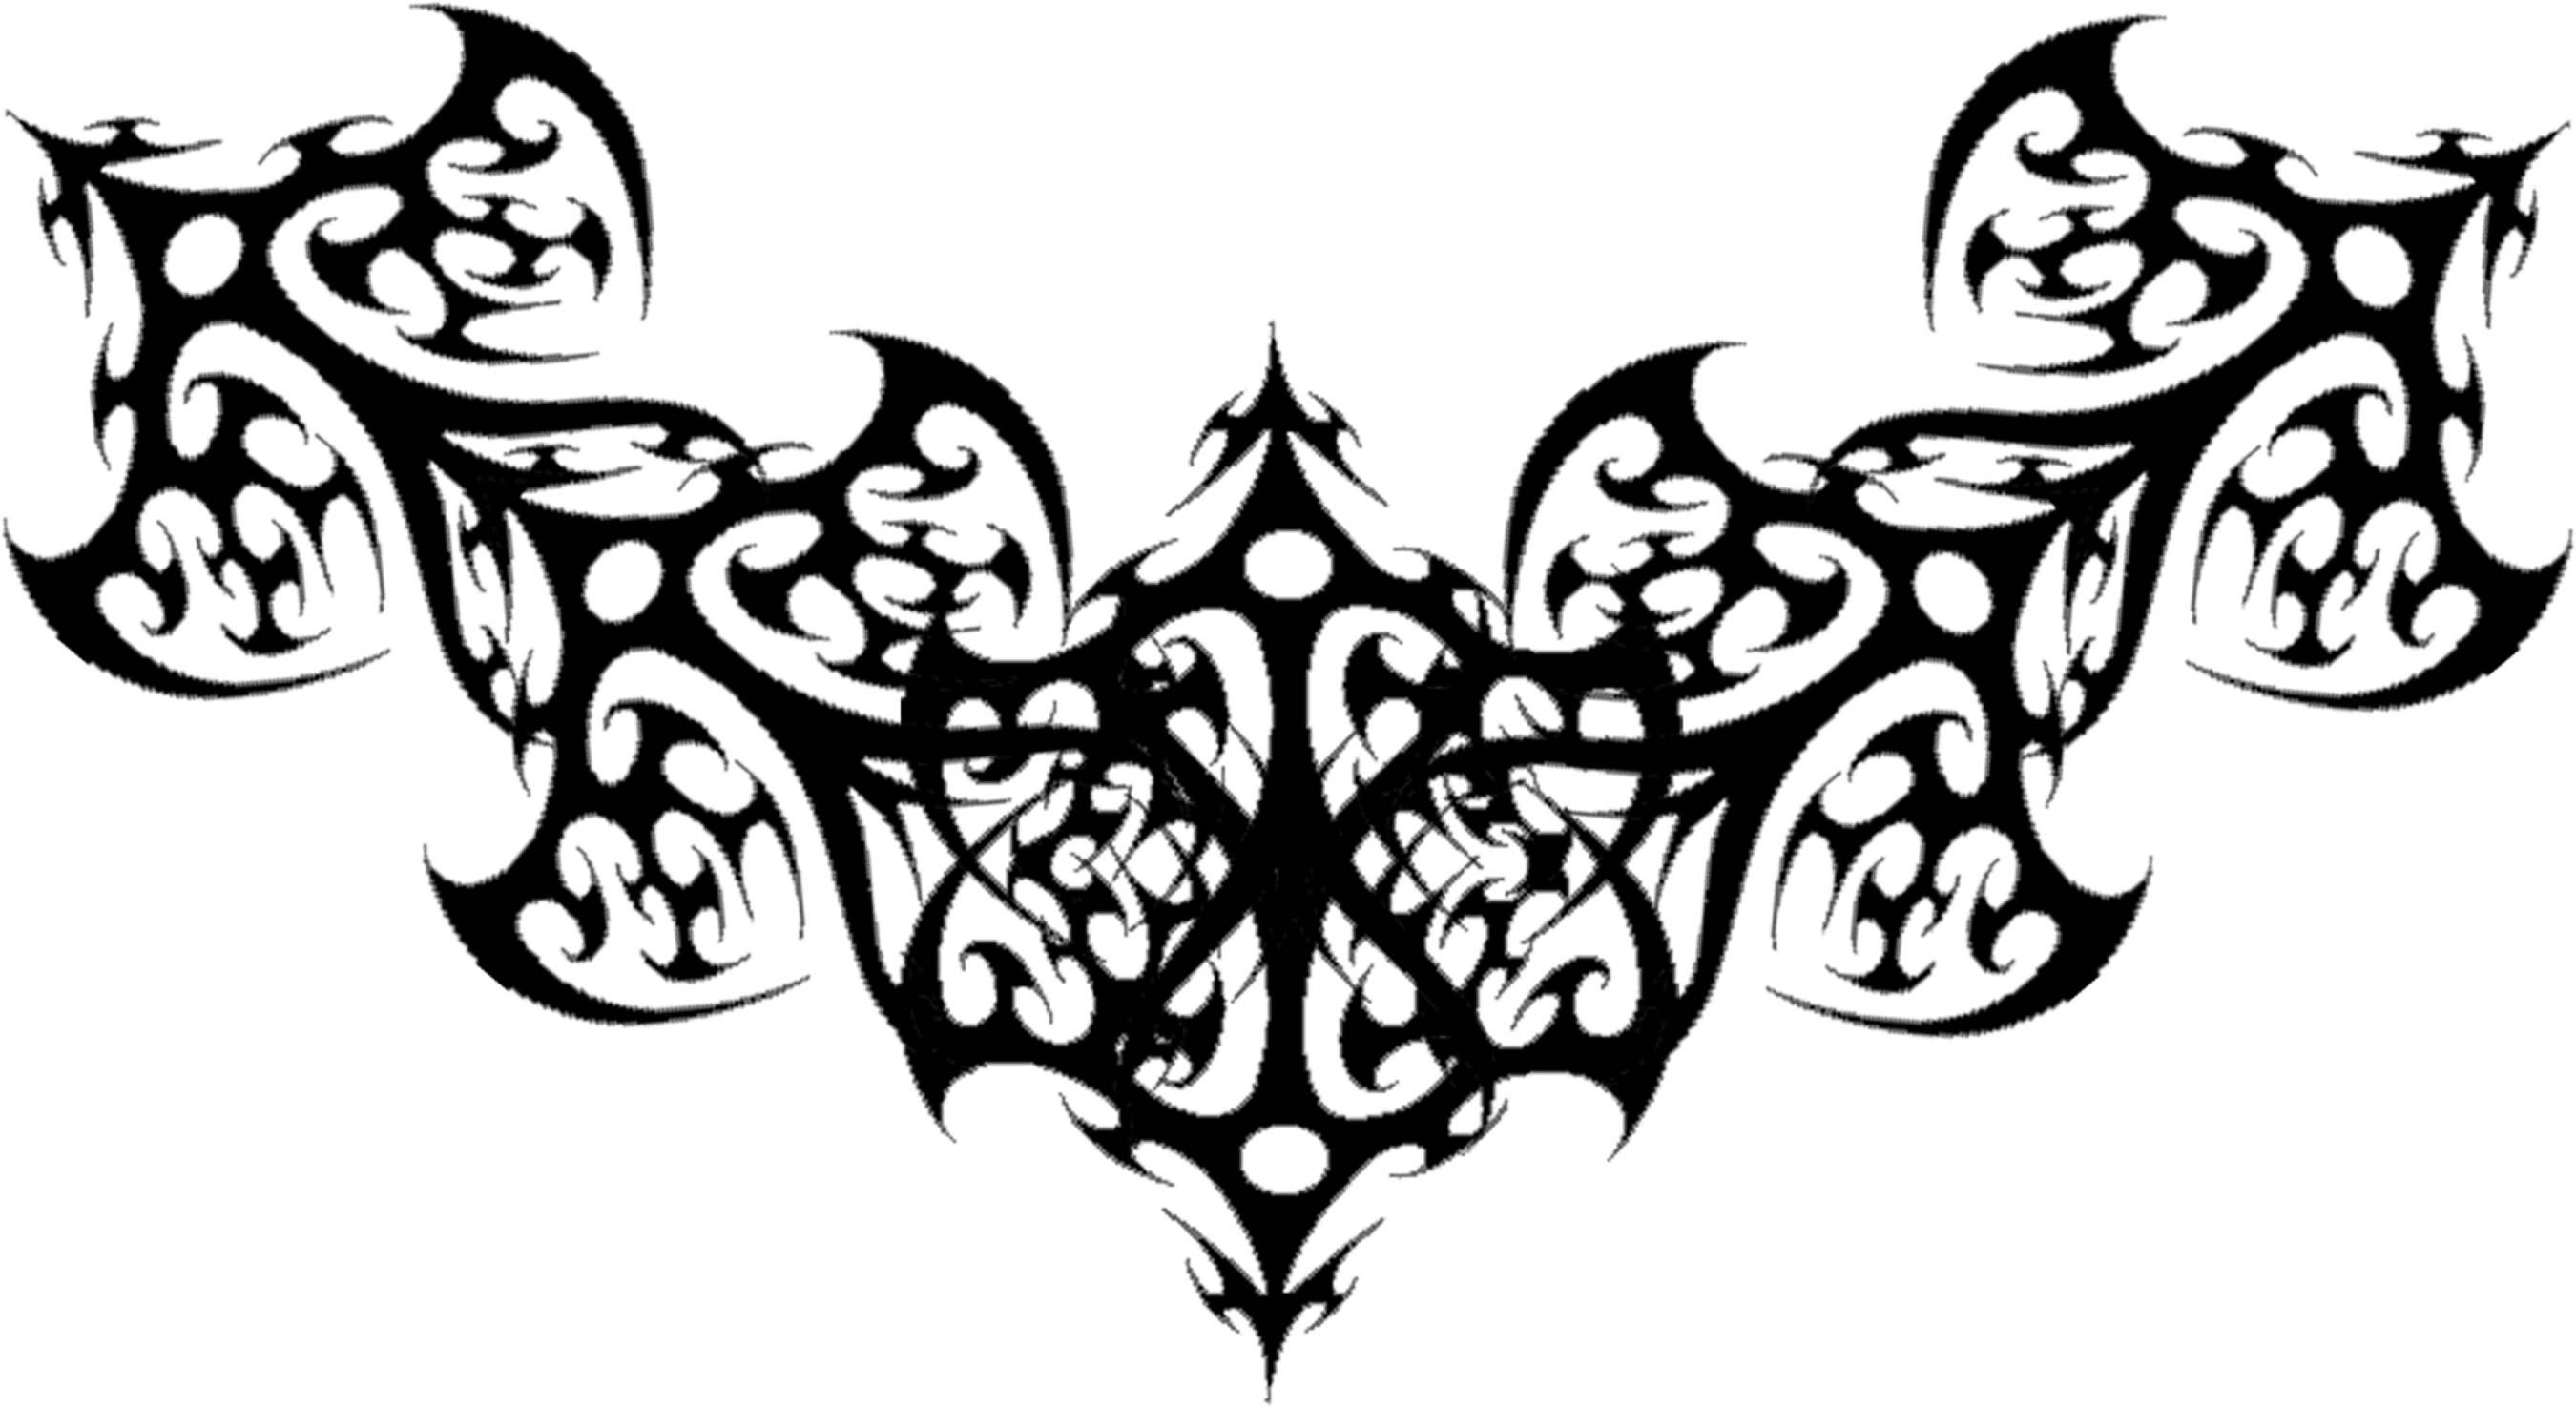 Classic Tribal Gothic Tattoo Design